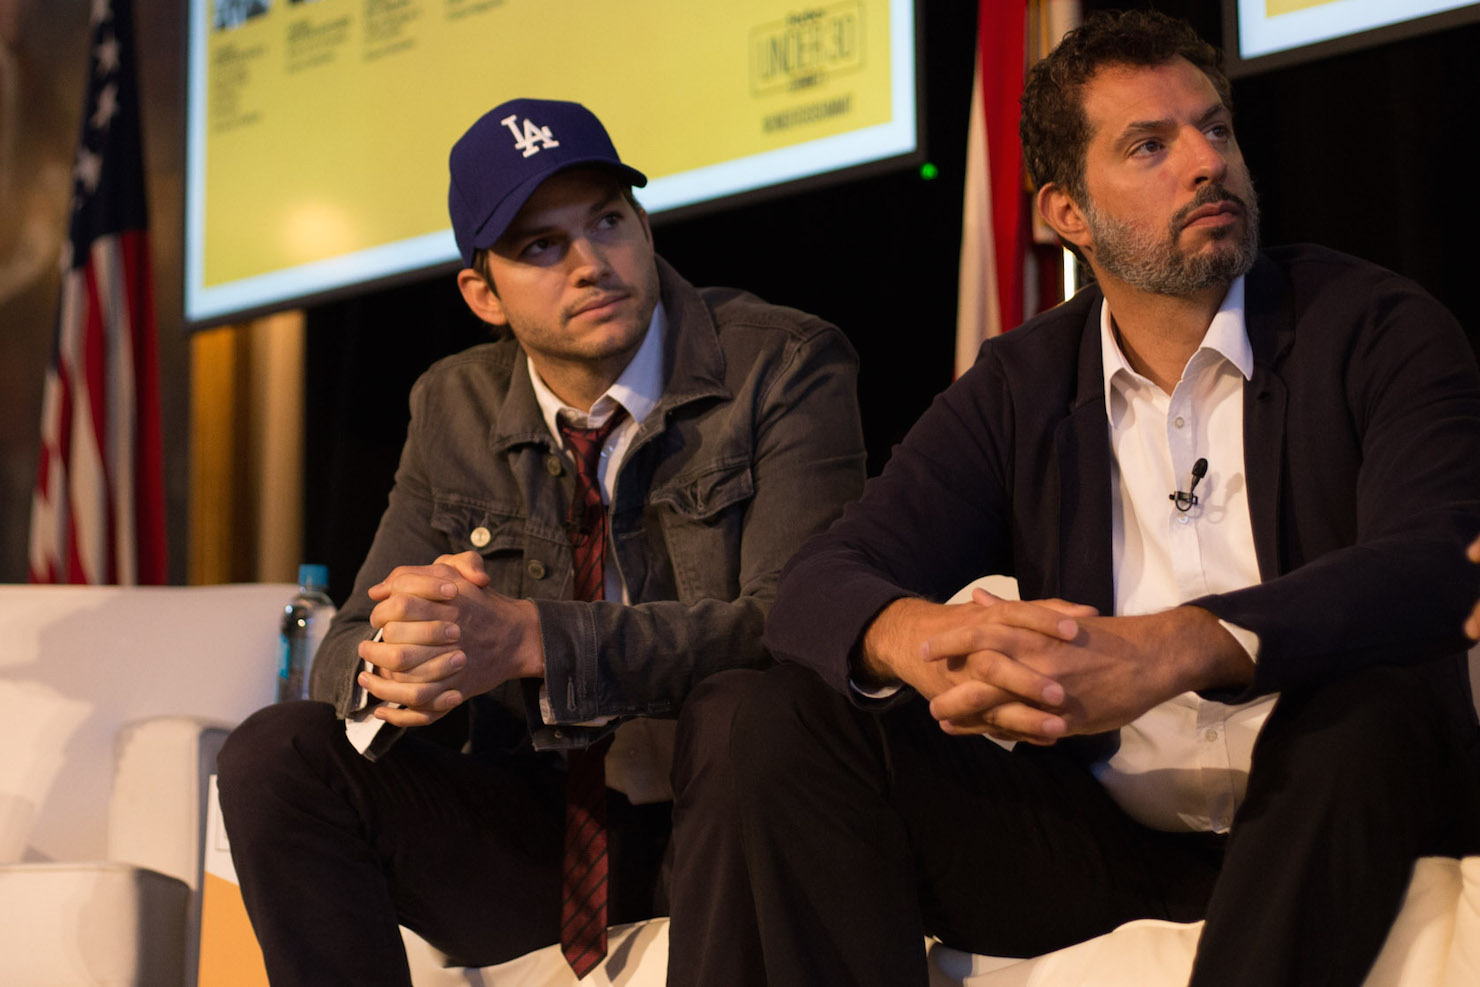 Ashton Kutcher Guy Oseary Forbes Summit Boston